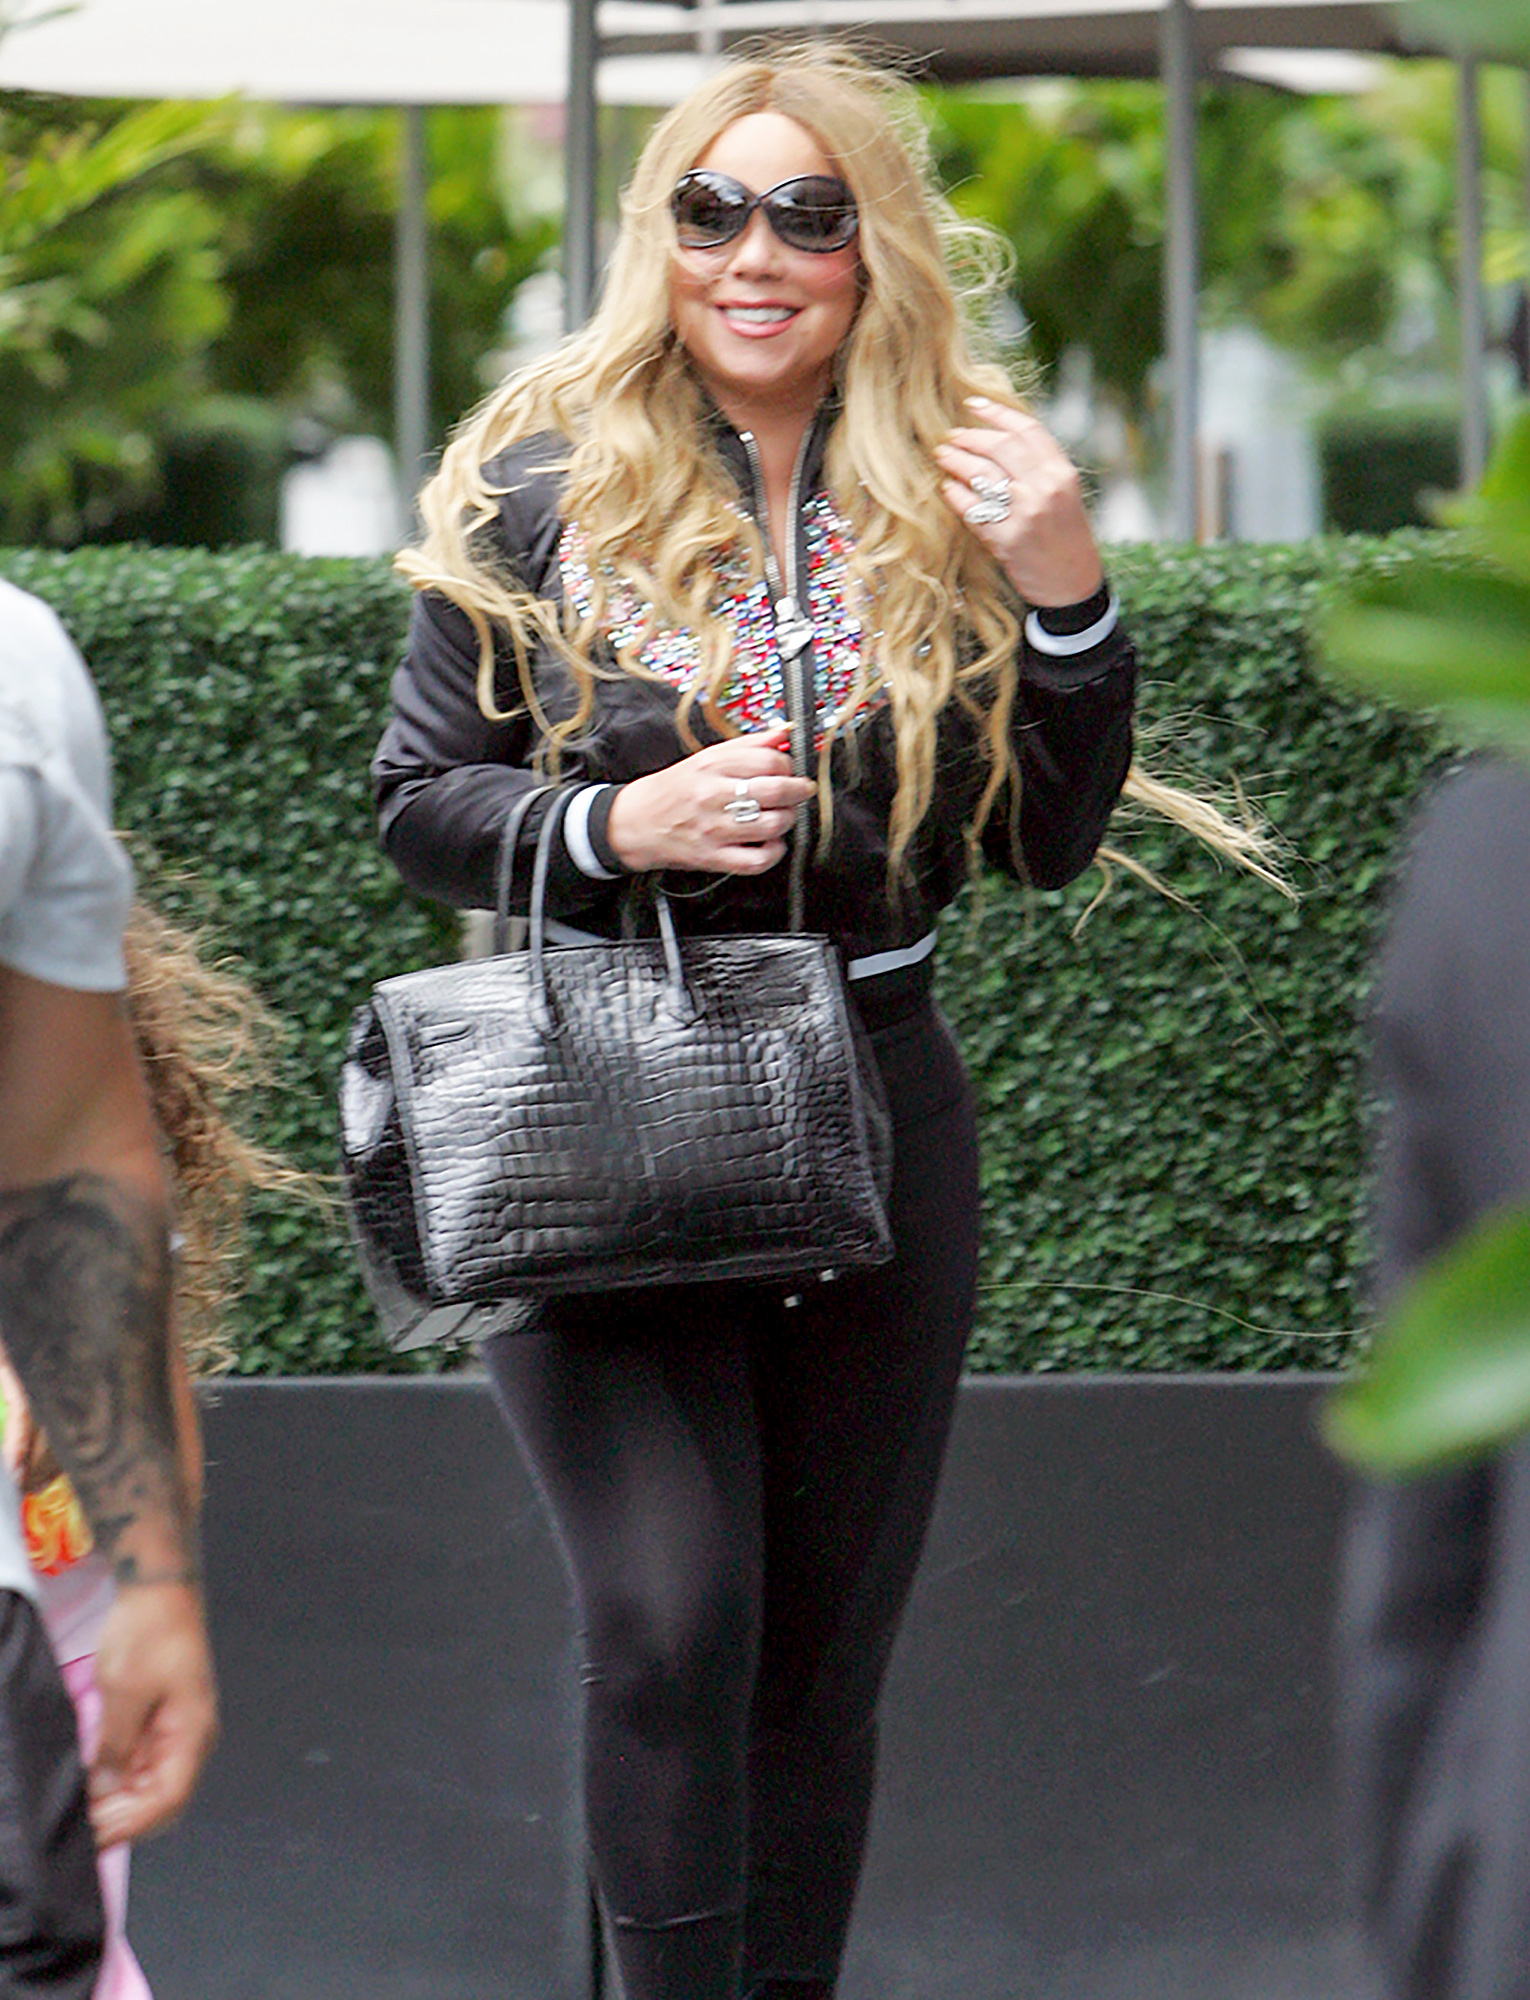 EXCLUSIVE: Mariah Carey arrives in Toronto in advance of a concert appearance